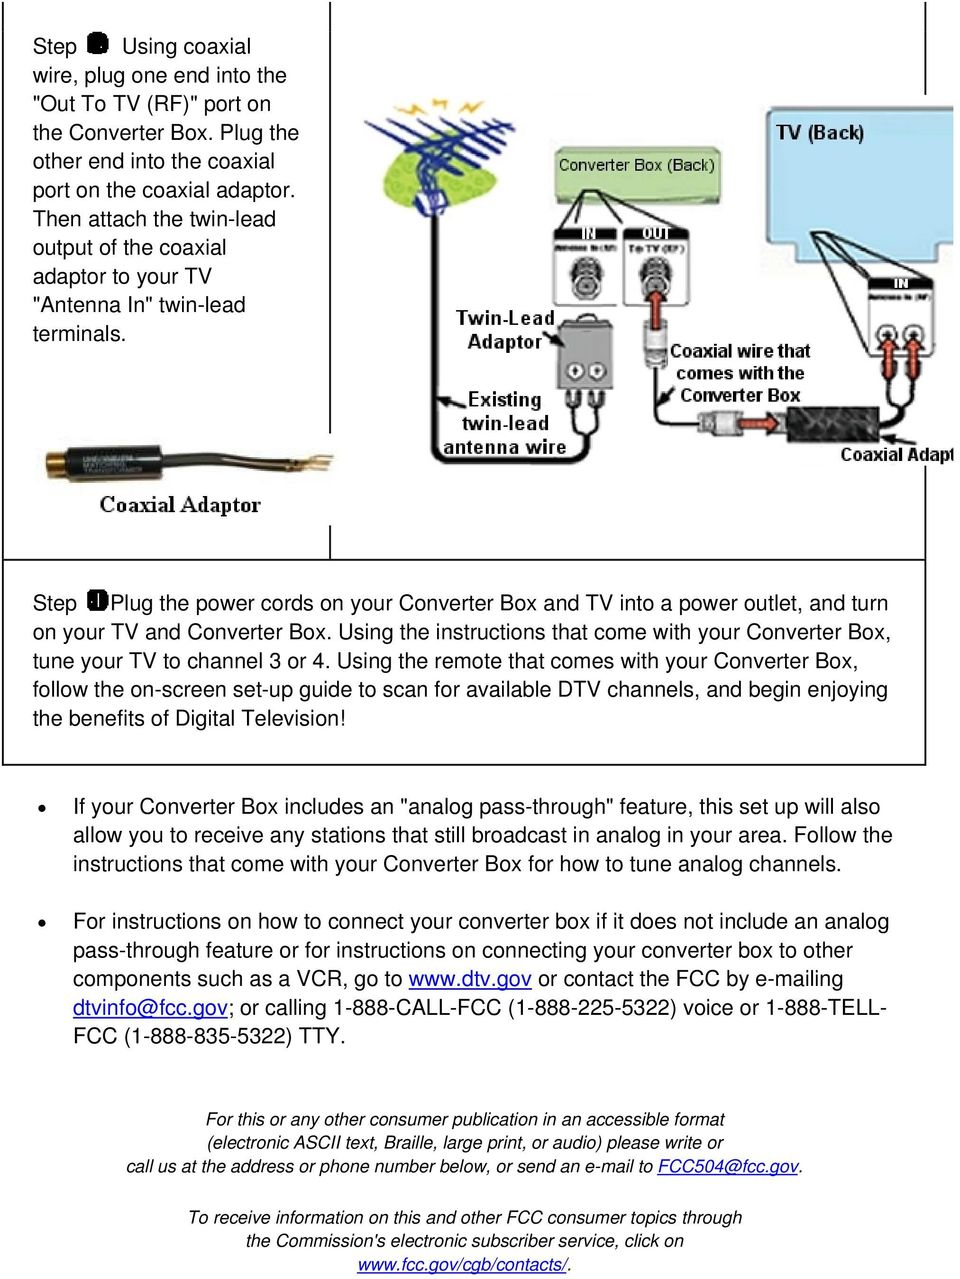 Plug the power cords on your Converter Box and TV into a power outlet, and turn on your TV and Converter Box. Using the instructions that come with your Converter Box, tune your TV to channel 3 or 4.